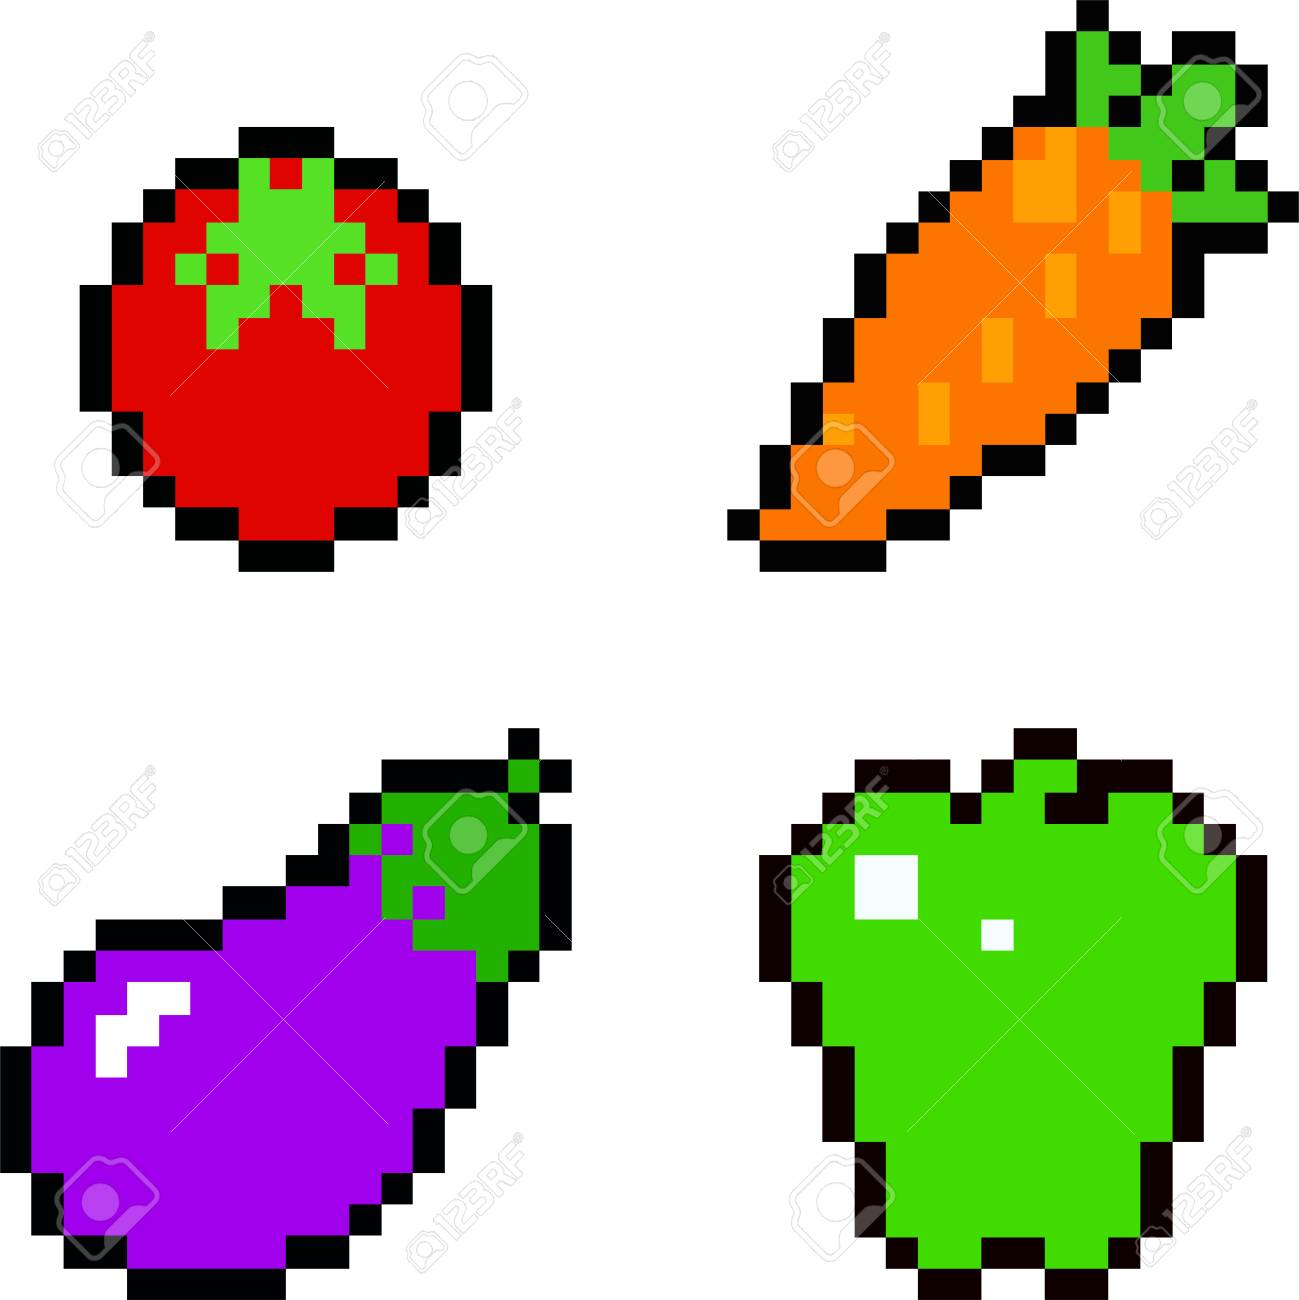 Set Of Food Icons In Pixel Art Style Fruits And Vegetables Royalty Free Cliparts Vectors And Stock Illustration Image 90344290